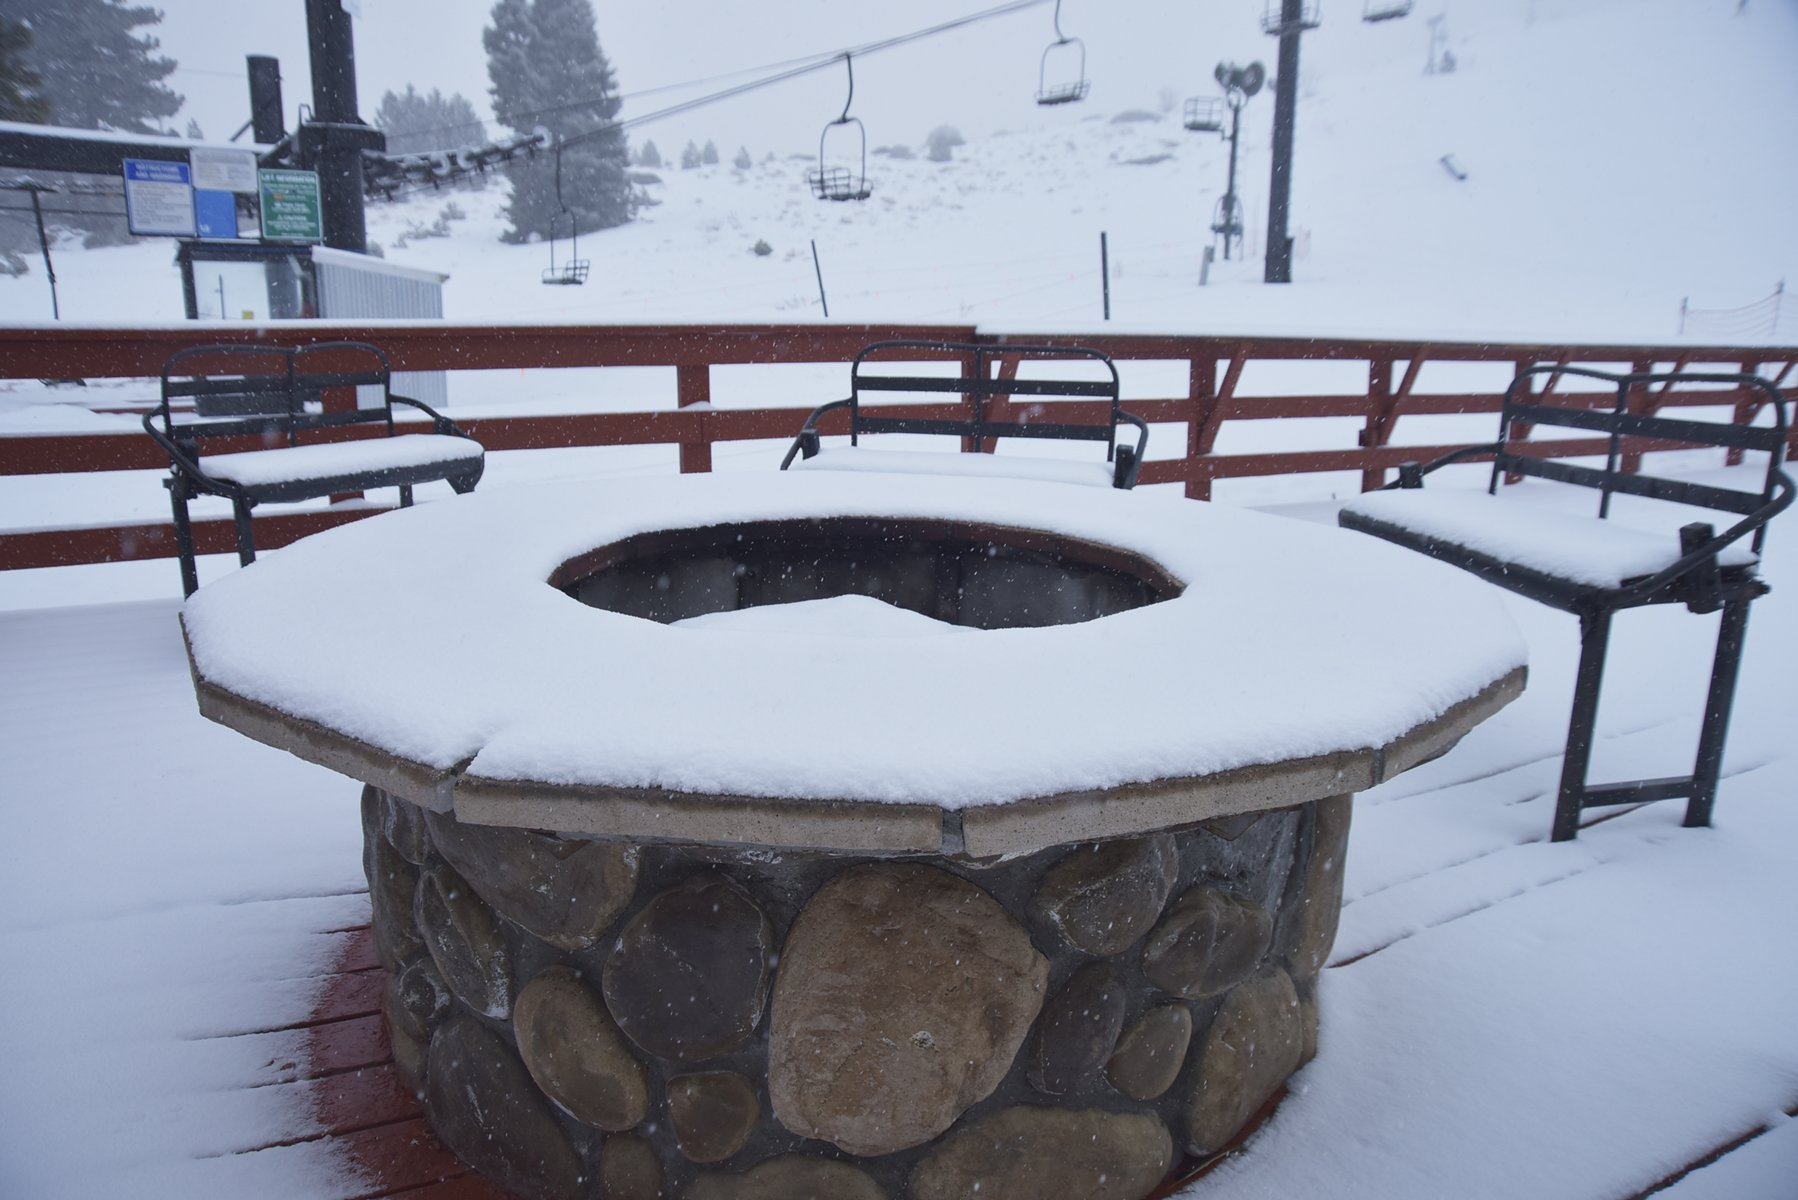 Fire pit on deck topped with snow while it is snowing